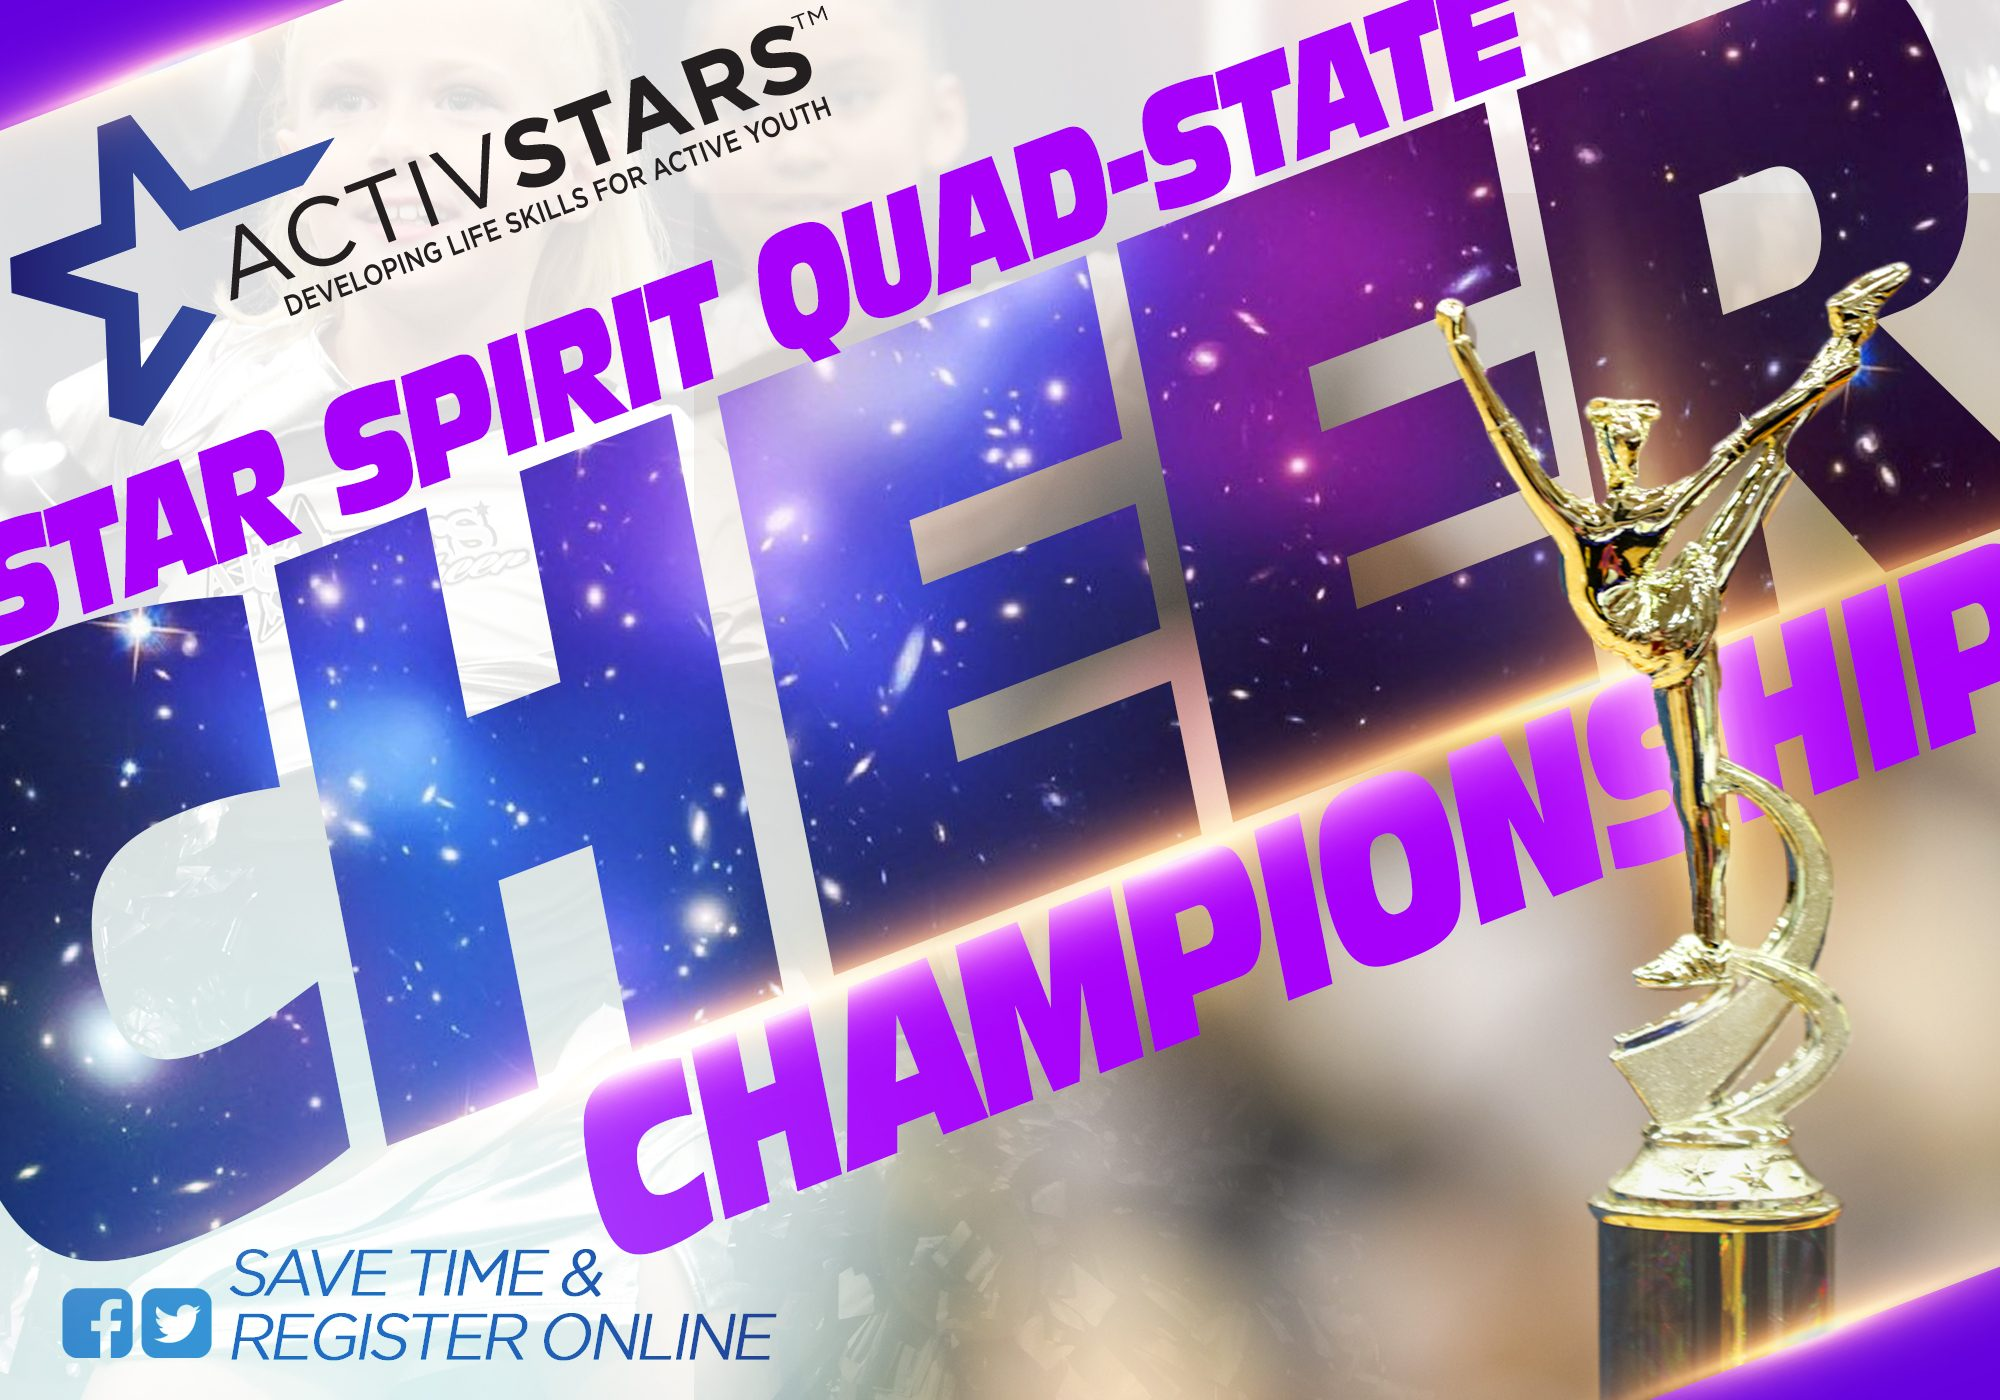 Star-Spirit-QUAD--State-Cheer-Championship